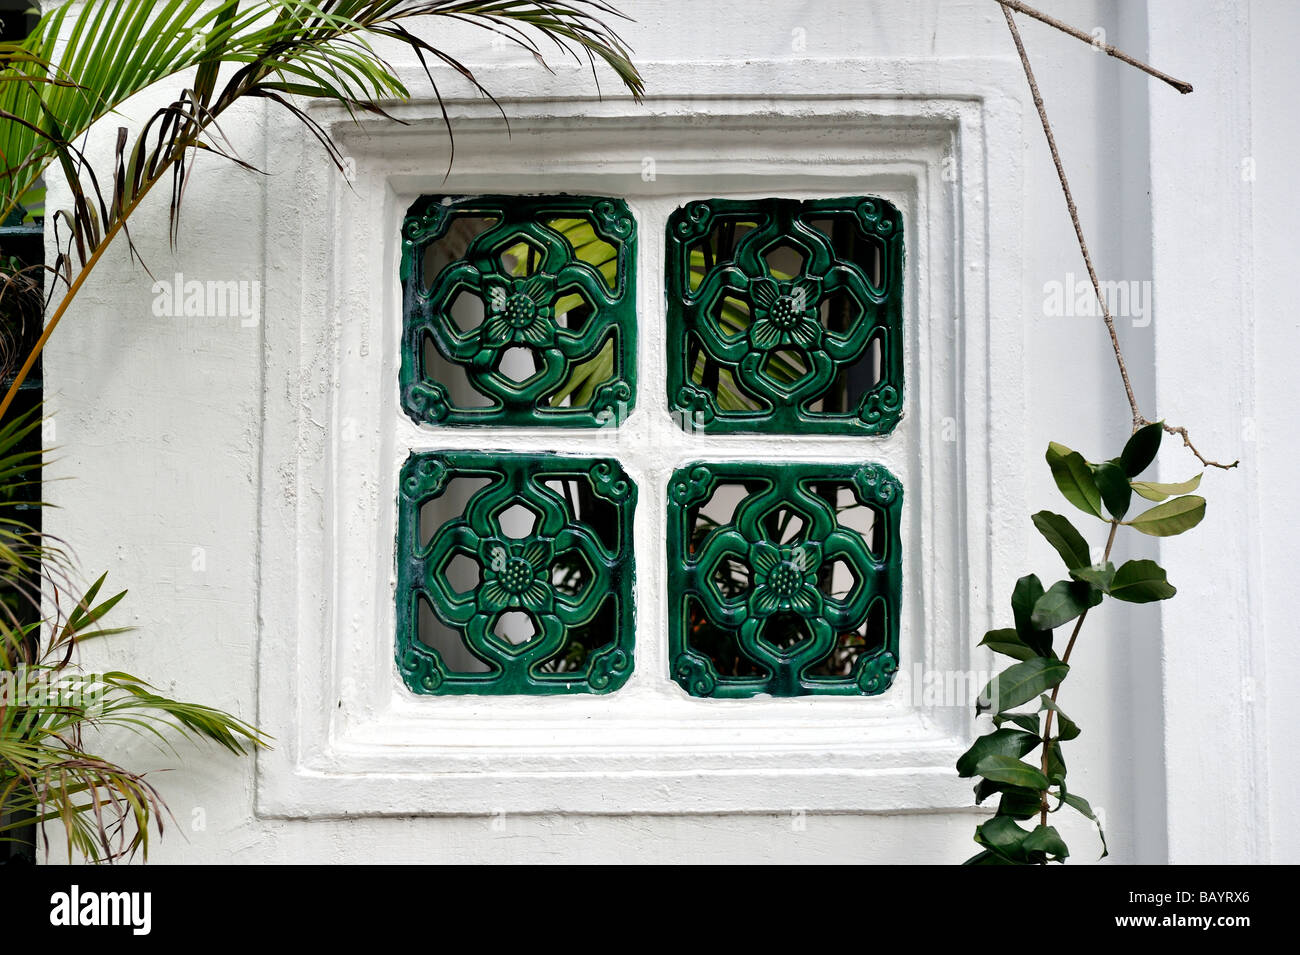 Ceramic window tiles in old brick wall emerald hill singapore ceramic window tiles in old brick wall emerald hill singapore doublecrazyfo Choice Image